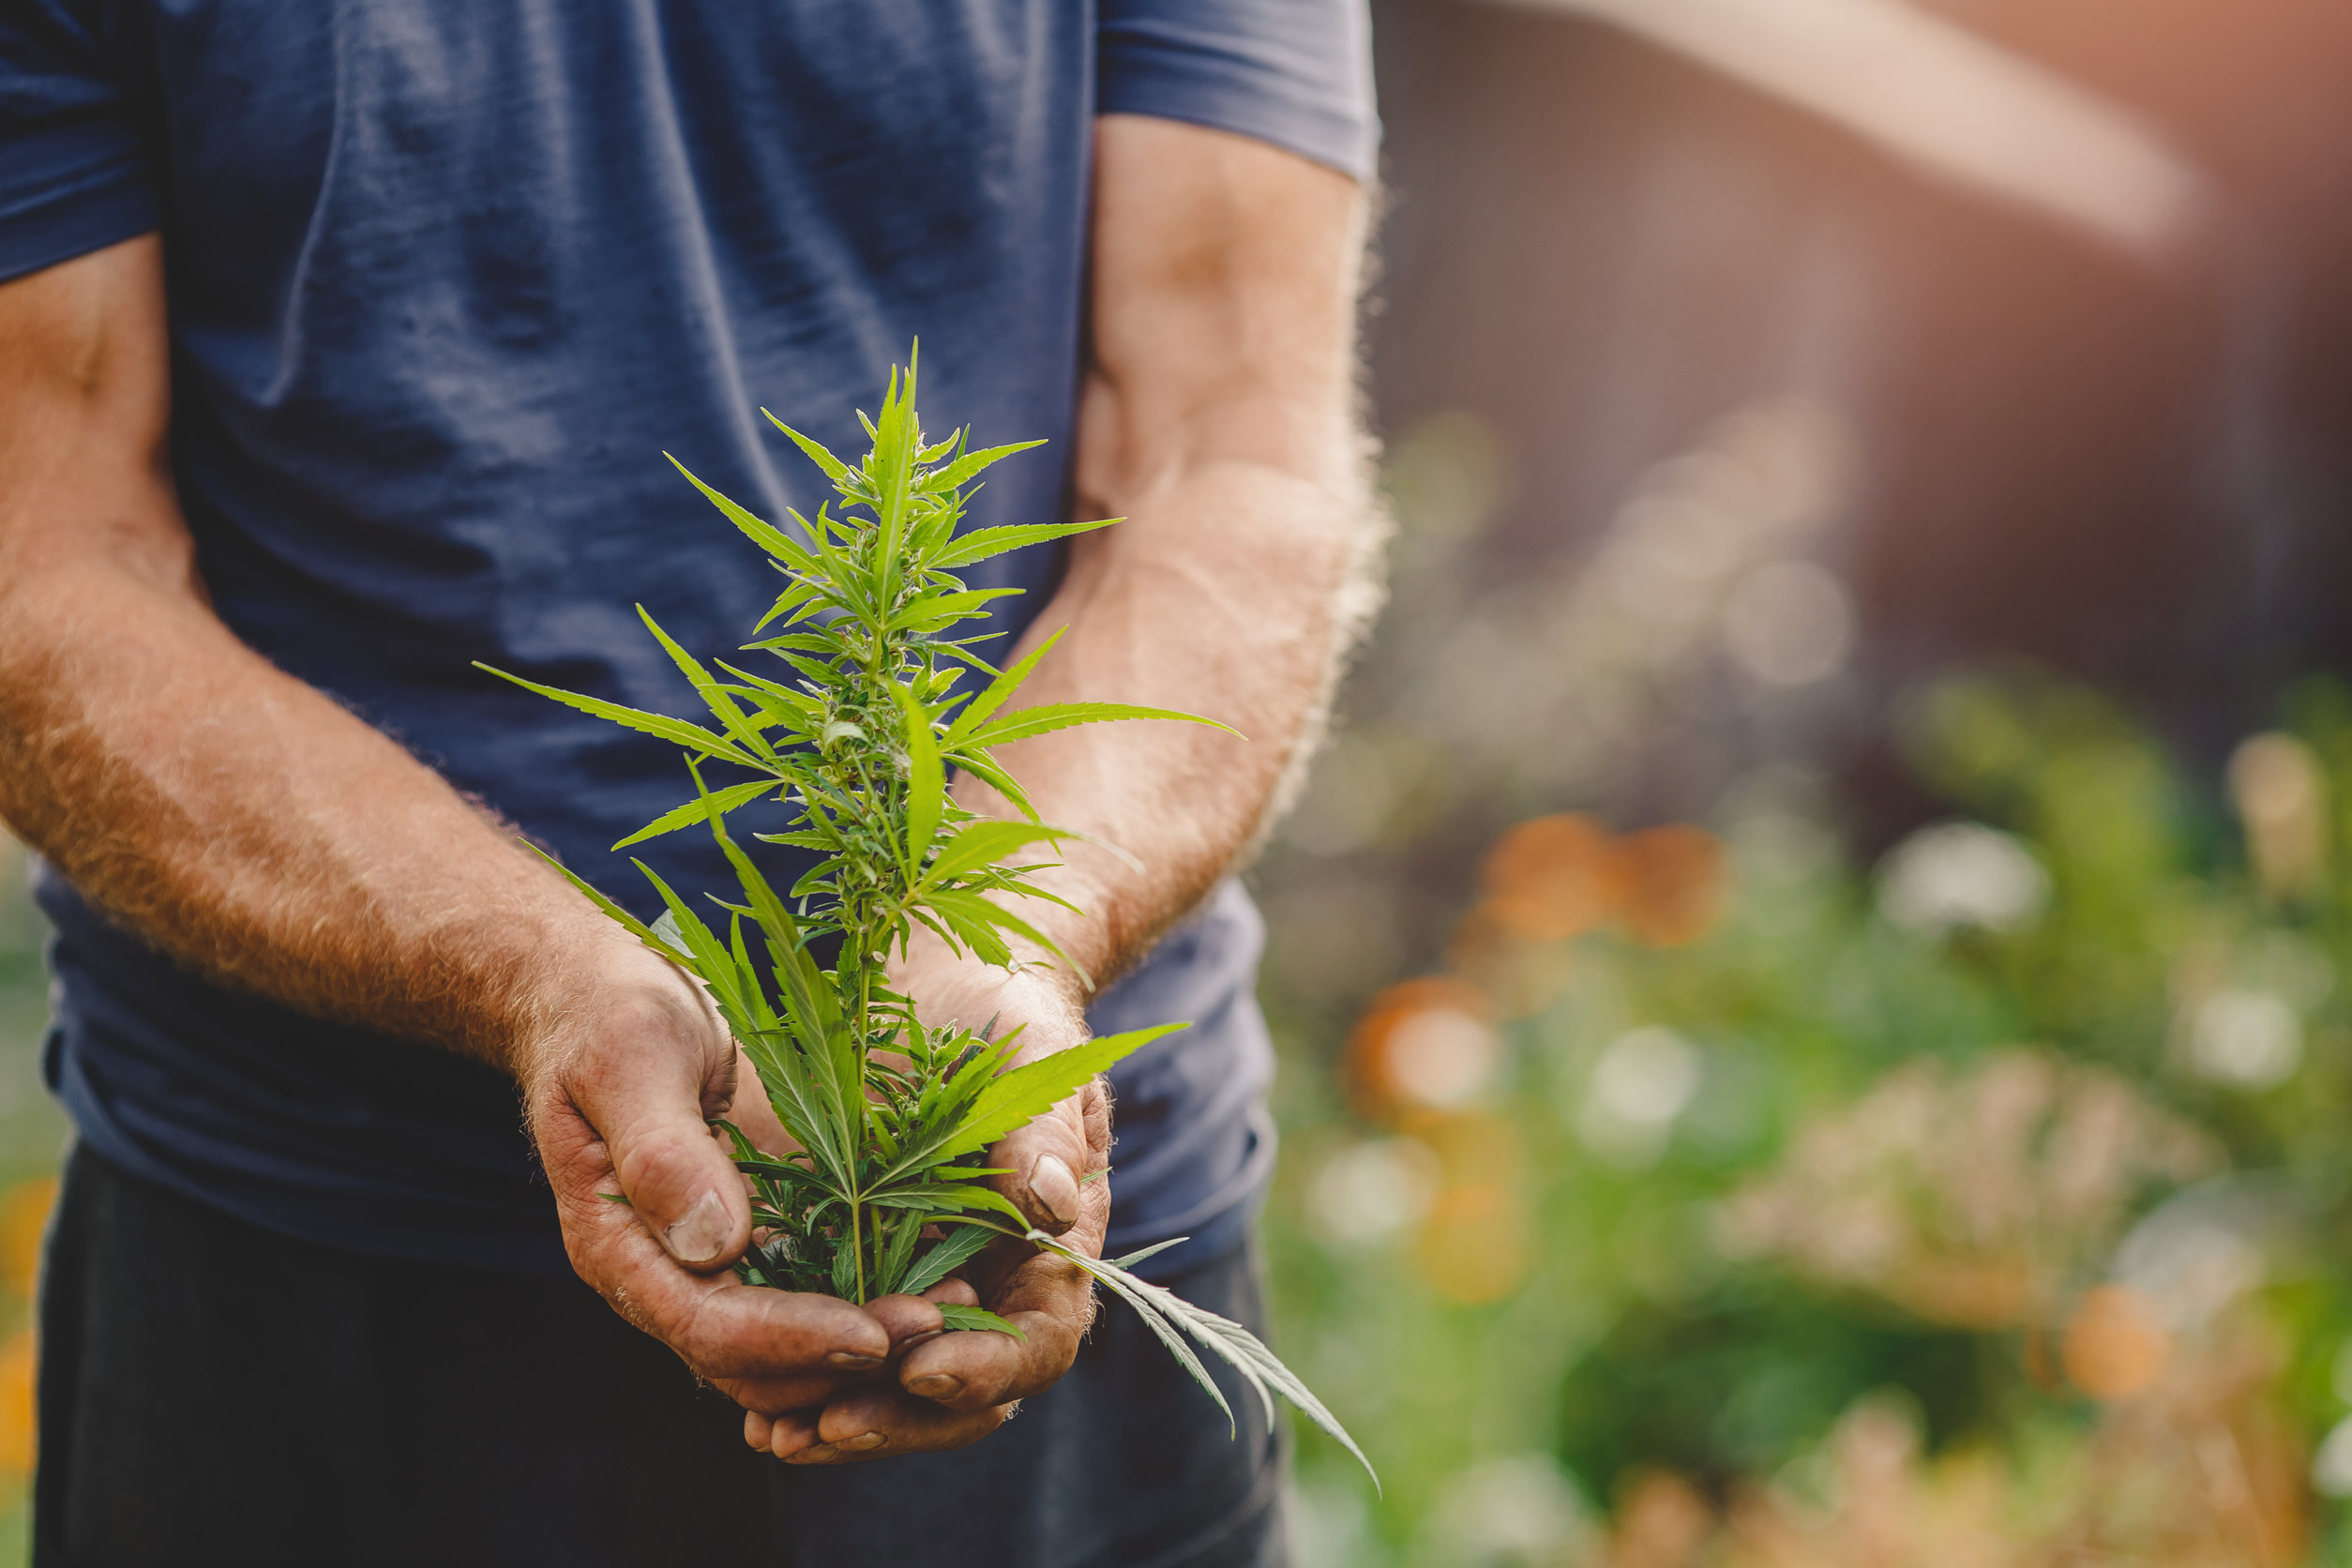 Is growing weed worth it? 6 reasons you should grow your own cannabis